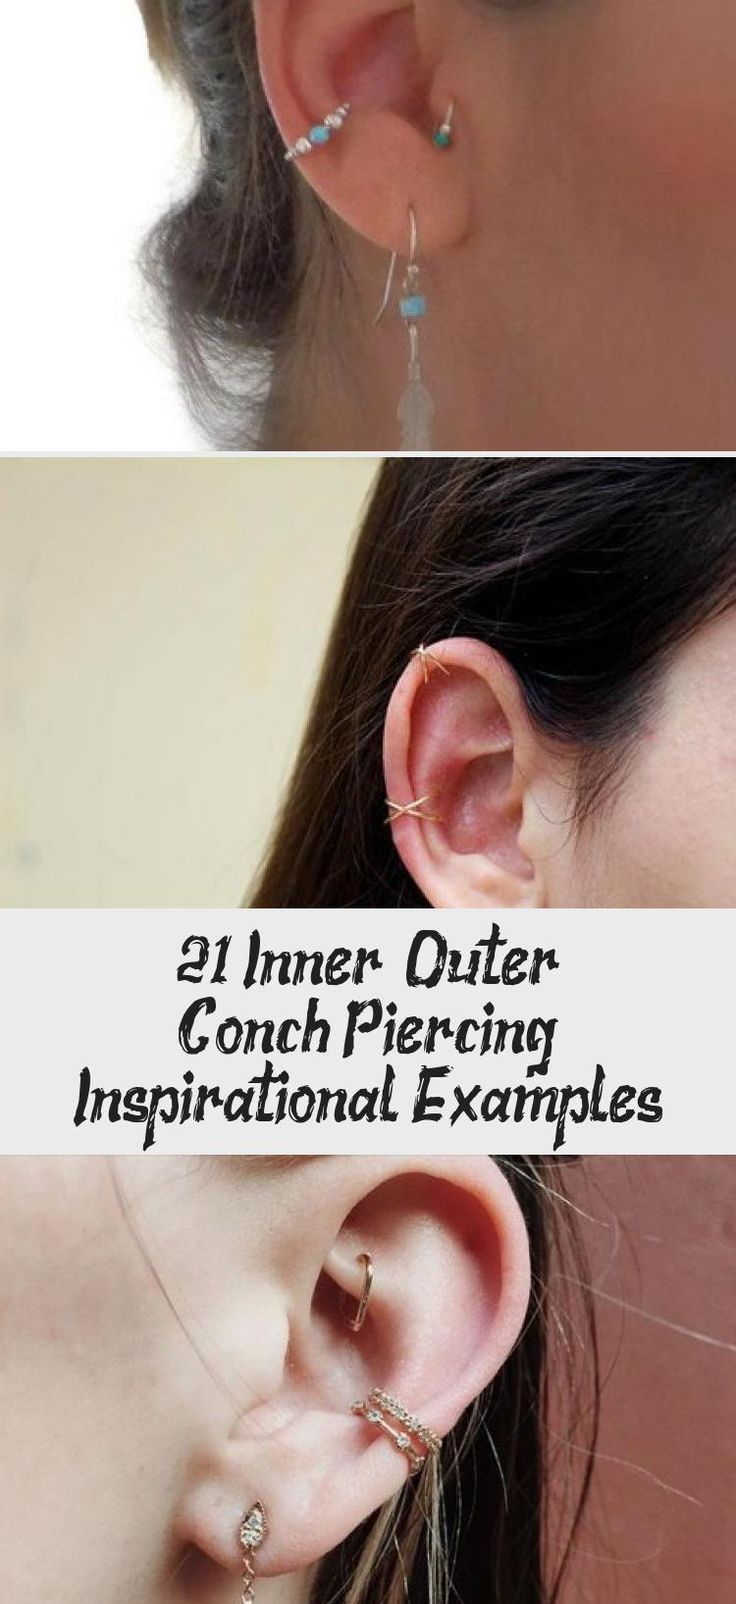 21 inner outer conch piercing inspirational examples in